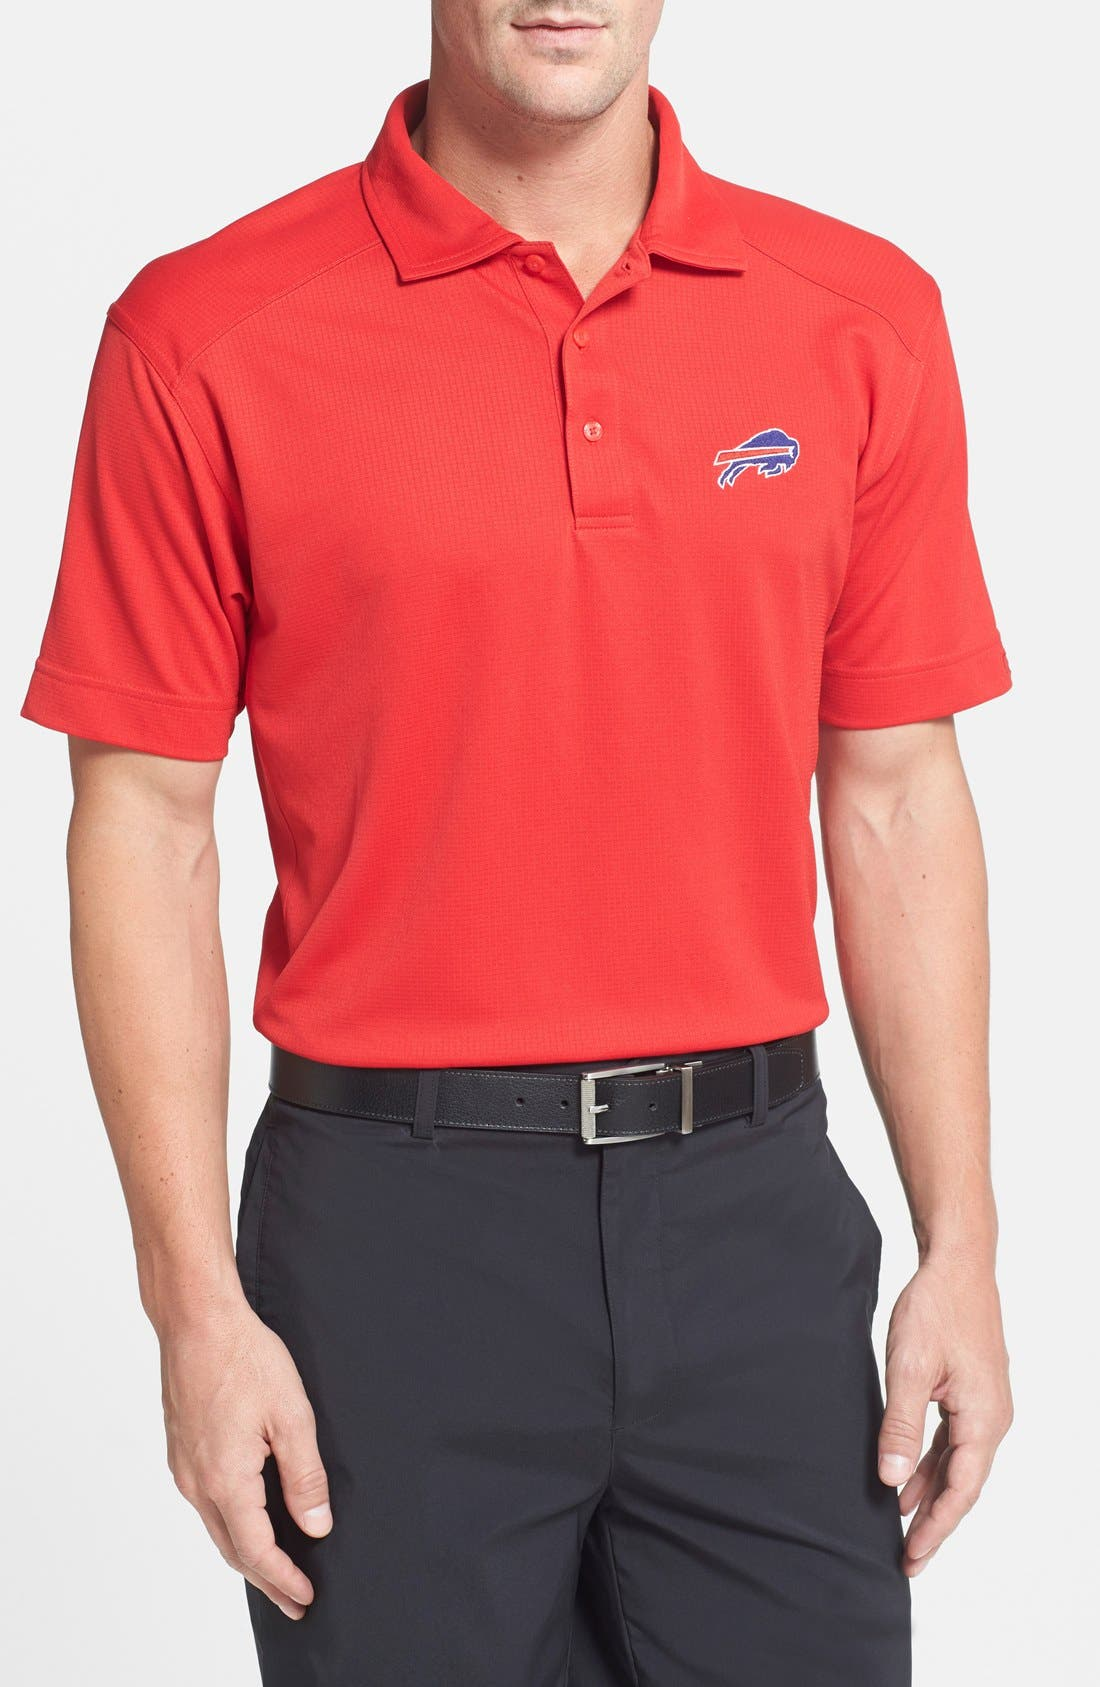 Cutter & Buck Buffalo Bills - Genre DryTec Moisture Wicking Polo